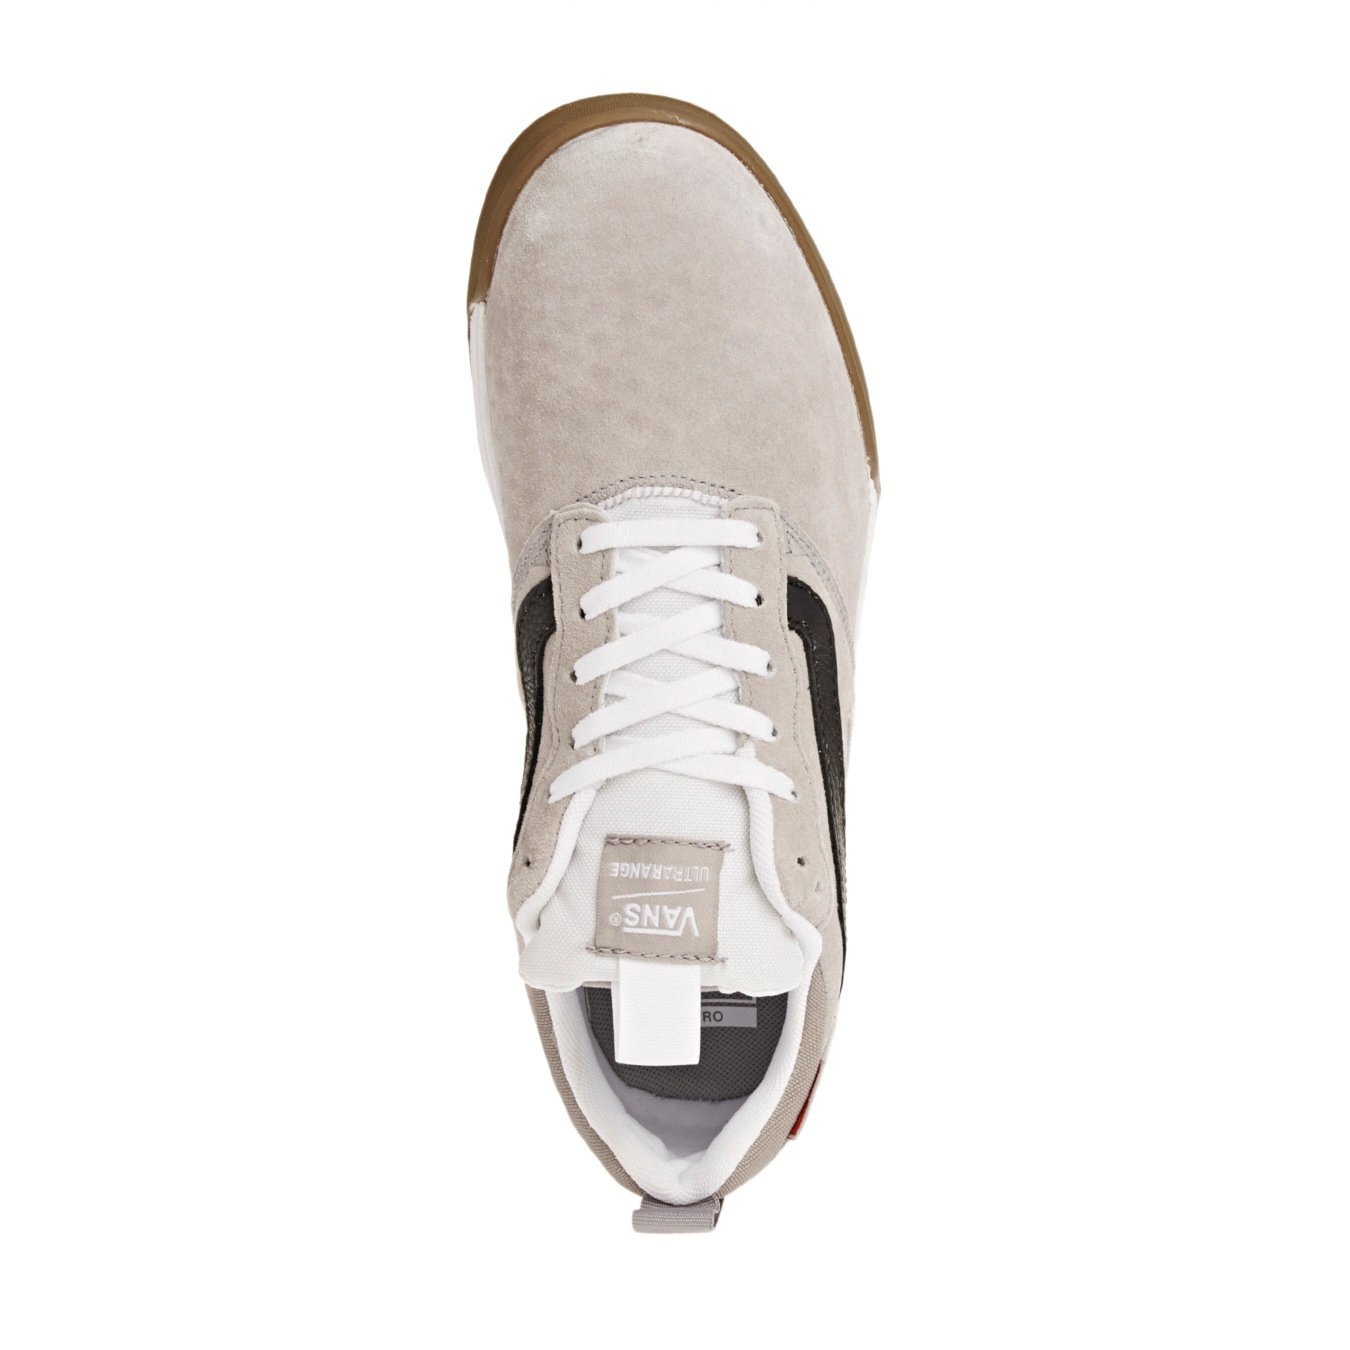 f6664e4f120d79 Vans Men s UltraRange Pro Dr Drizzle White Skate Shoe 11 Men US   Amazon.co.uk  Shoes   Bags